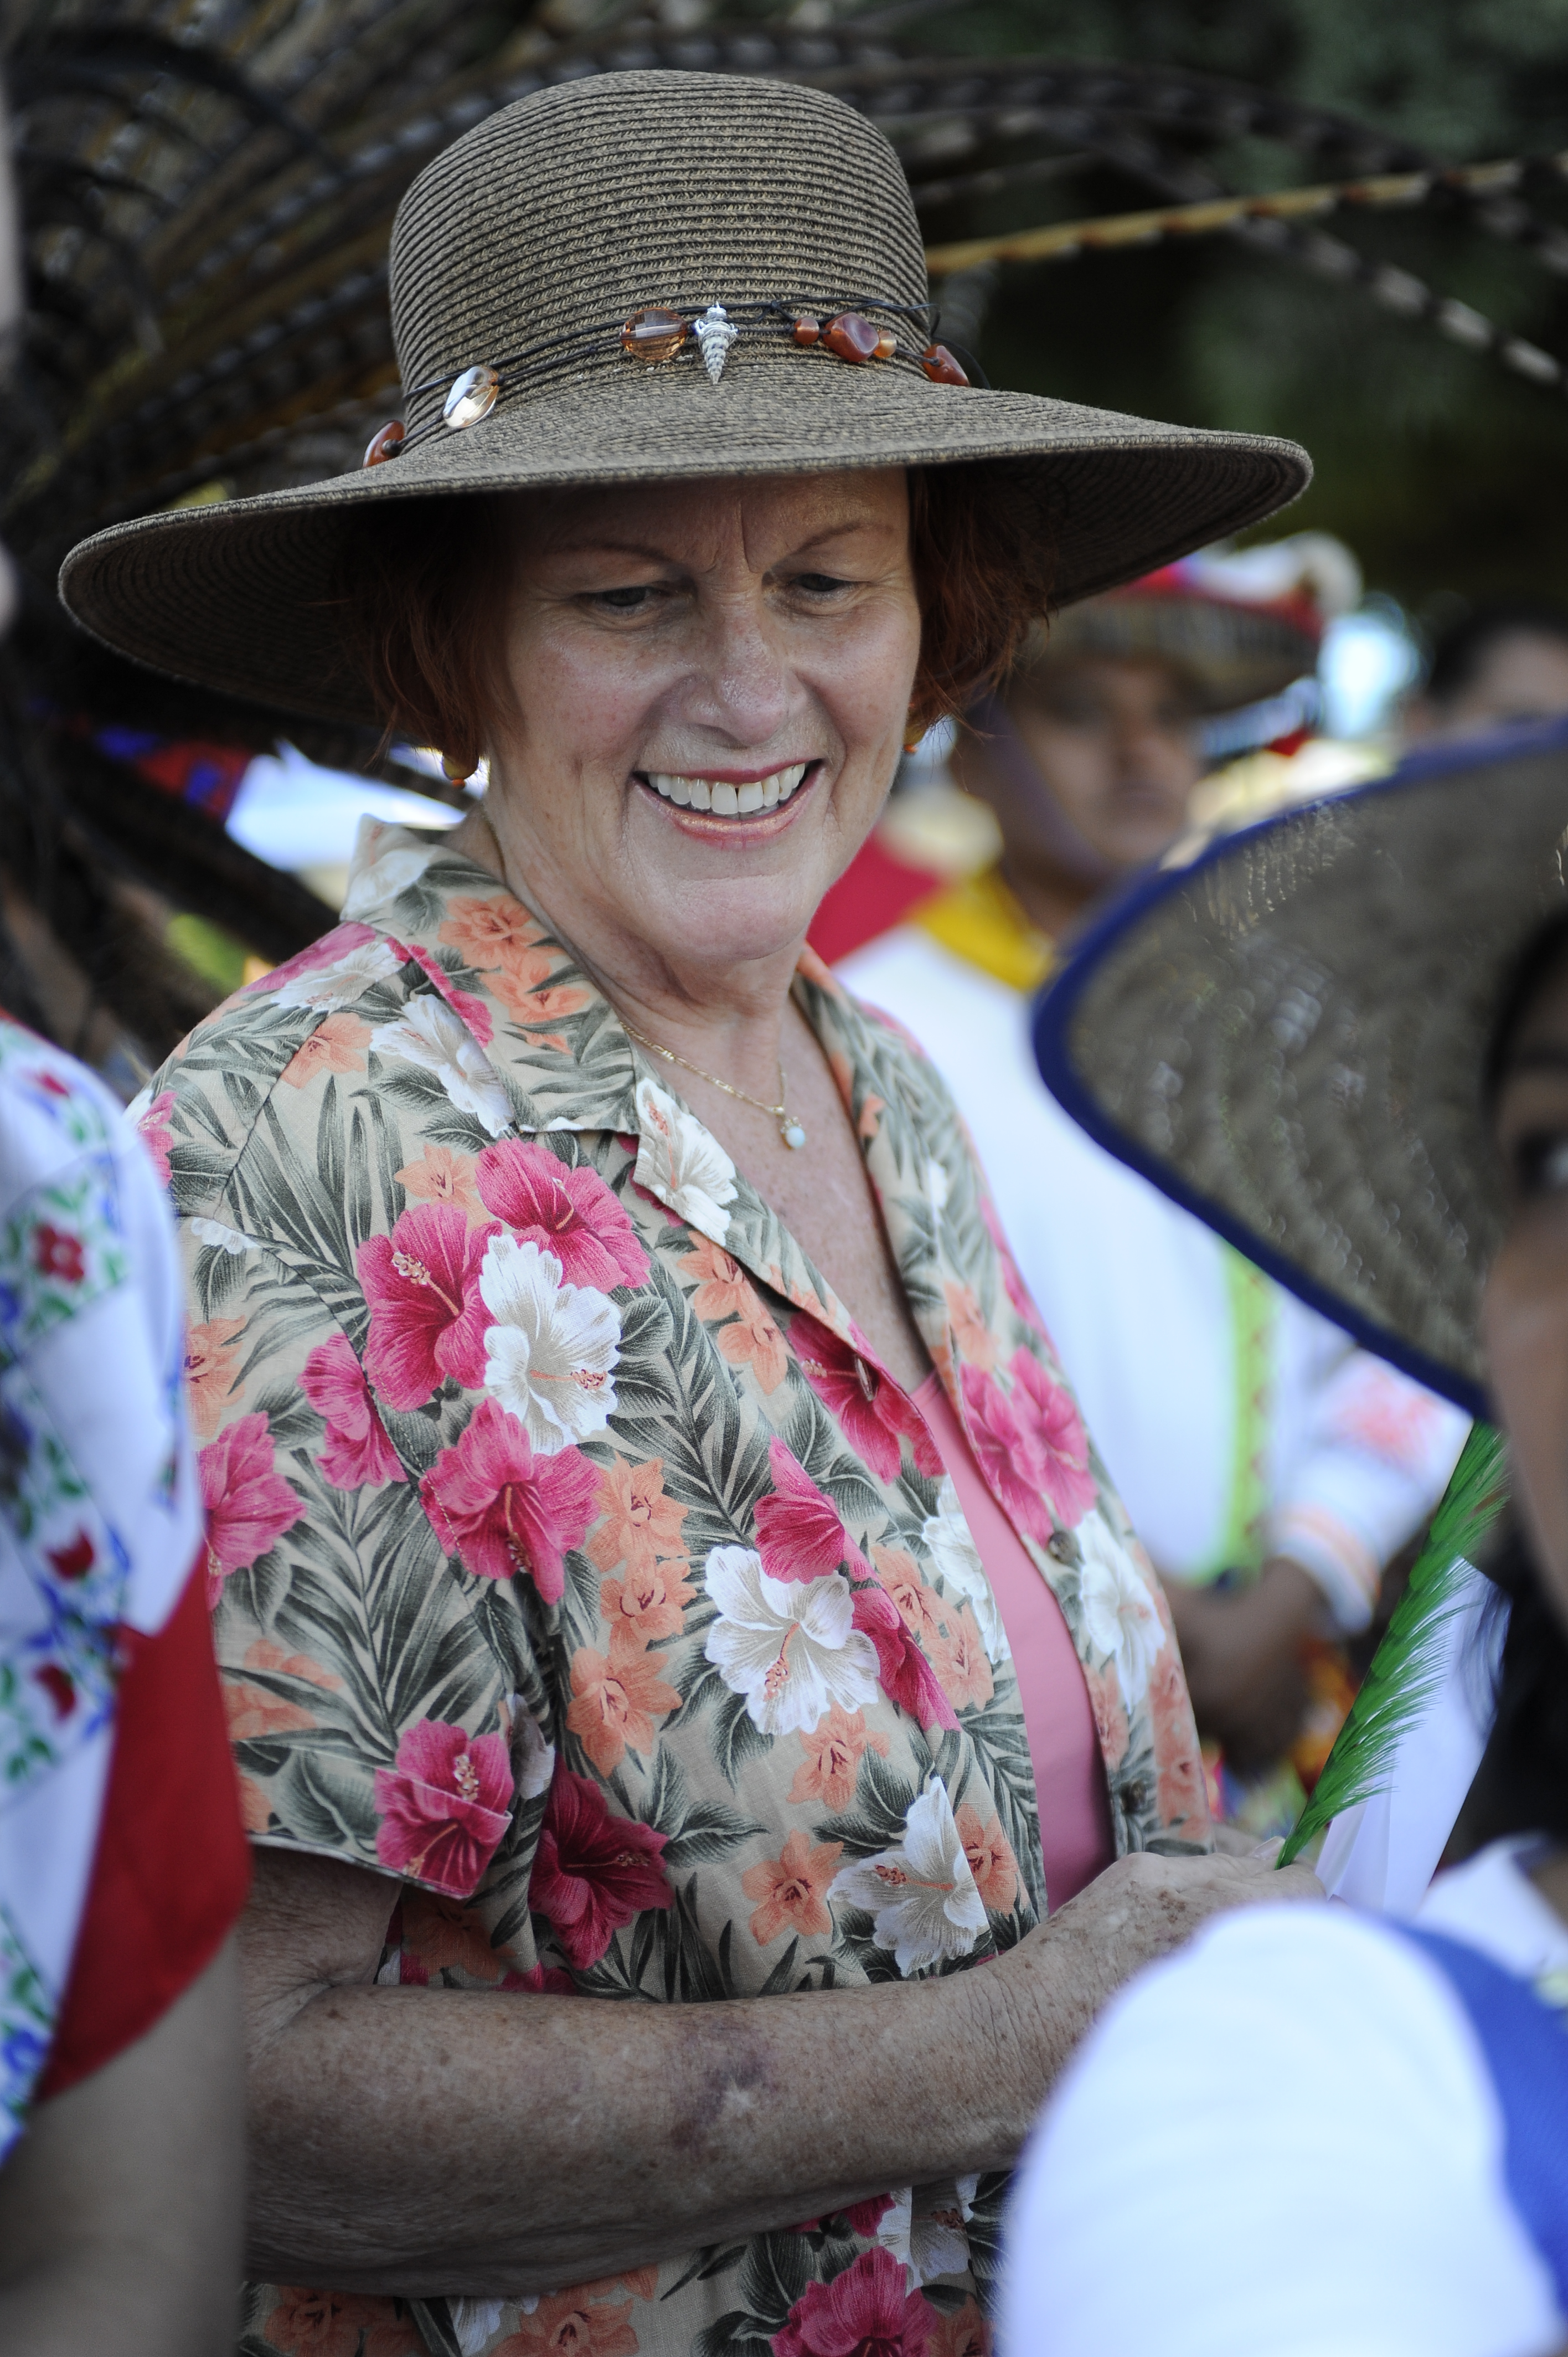 Woman wearing a sun hat and smiling